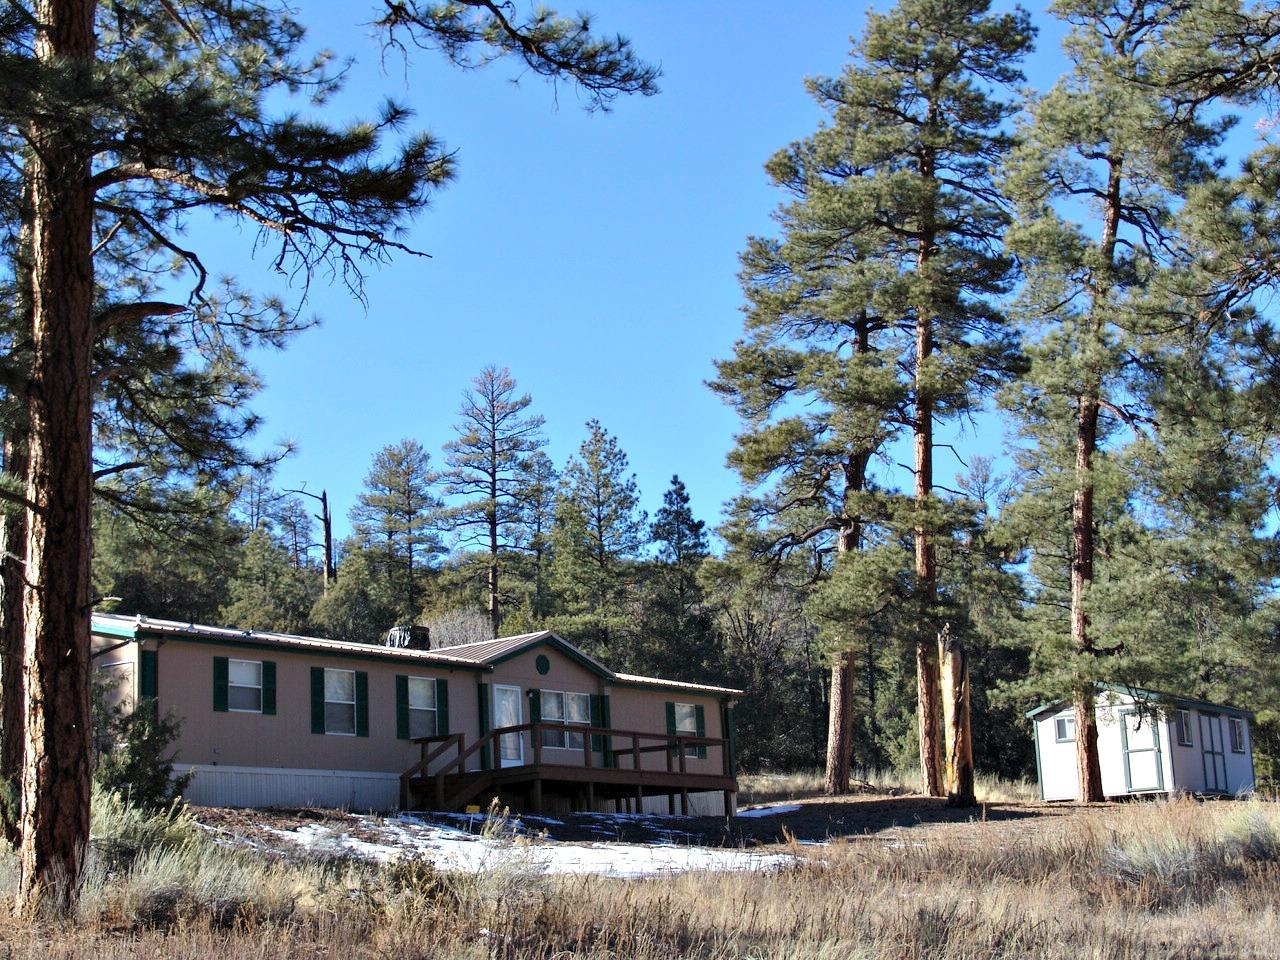 6974 Highway 60, Datil, NM 87821 - Datil, NM real estate listing